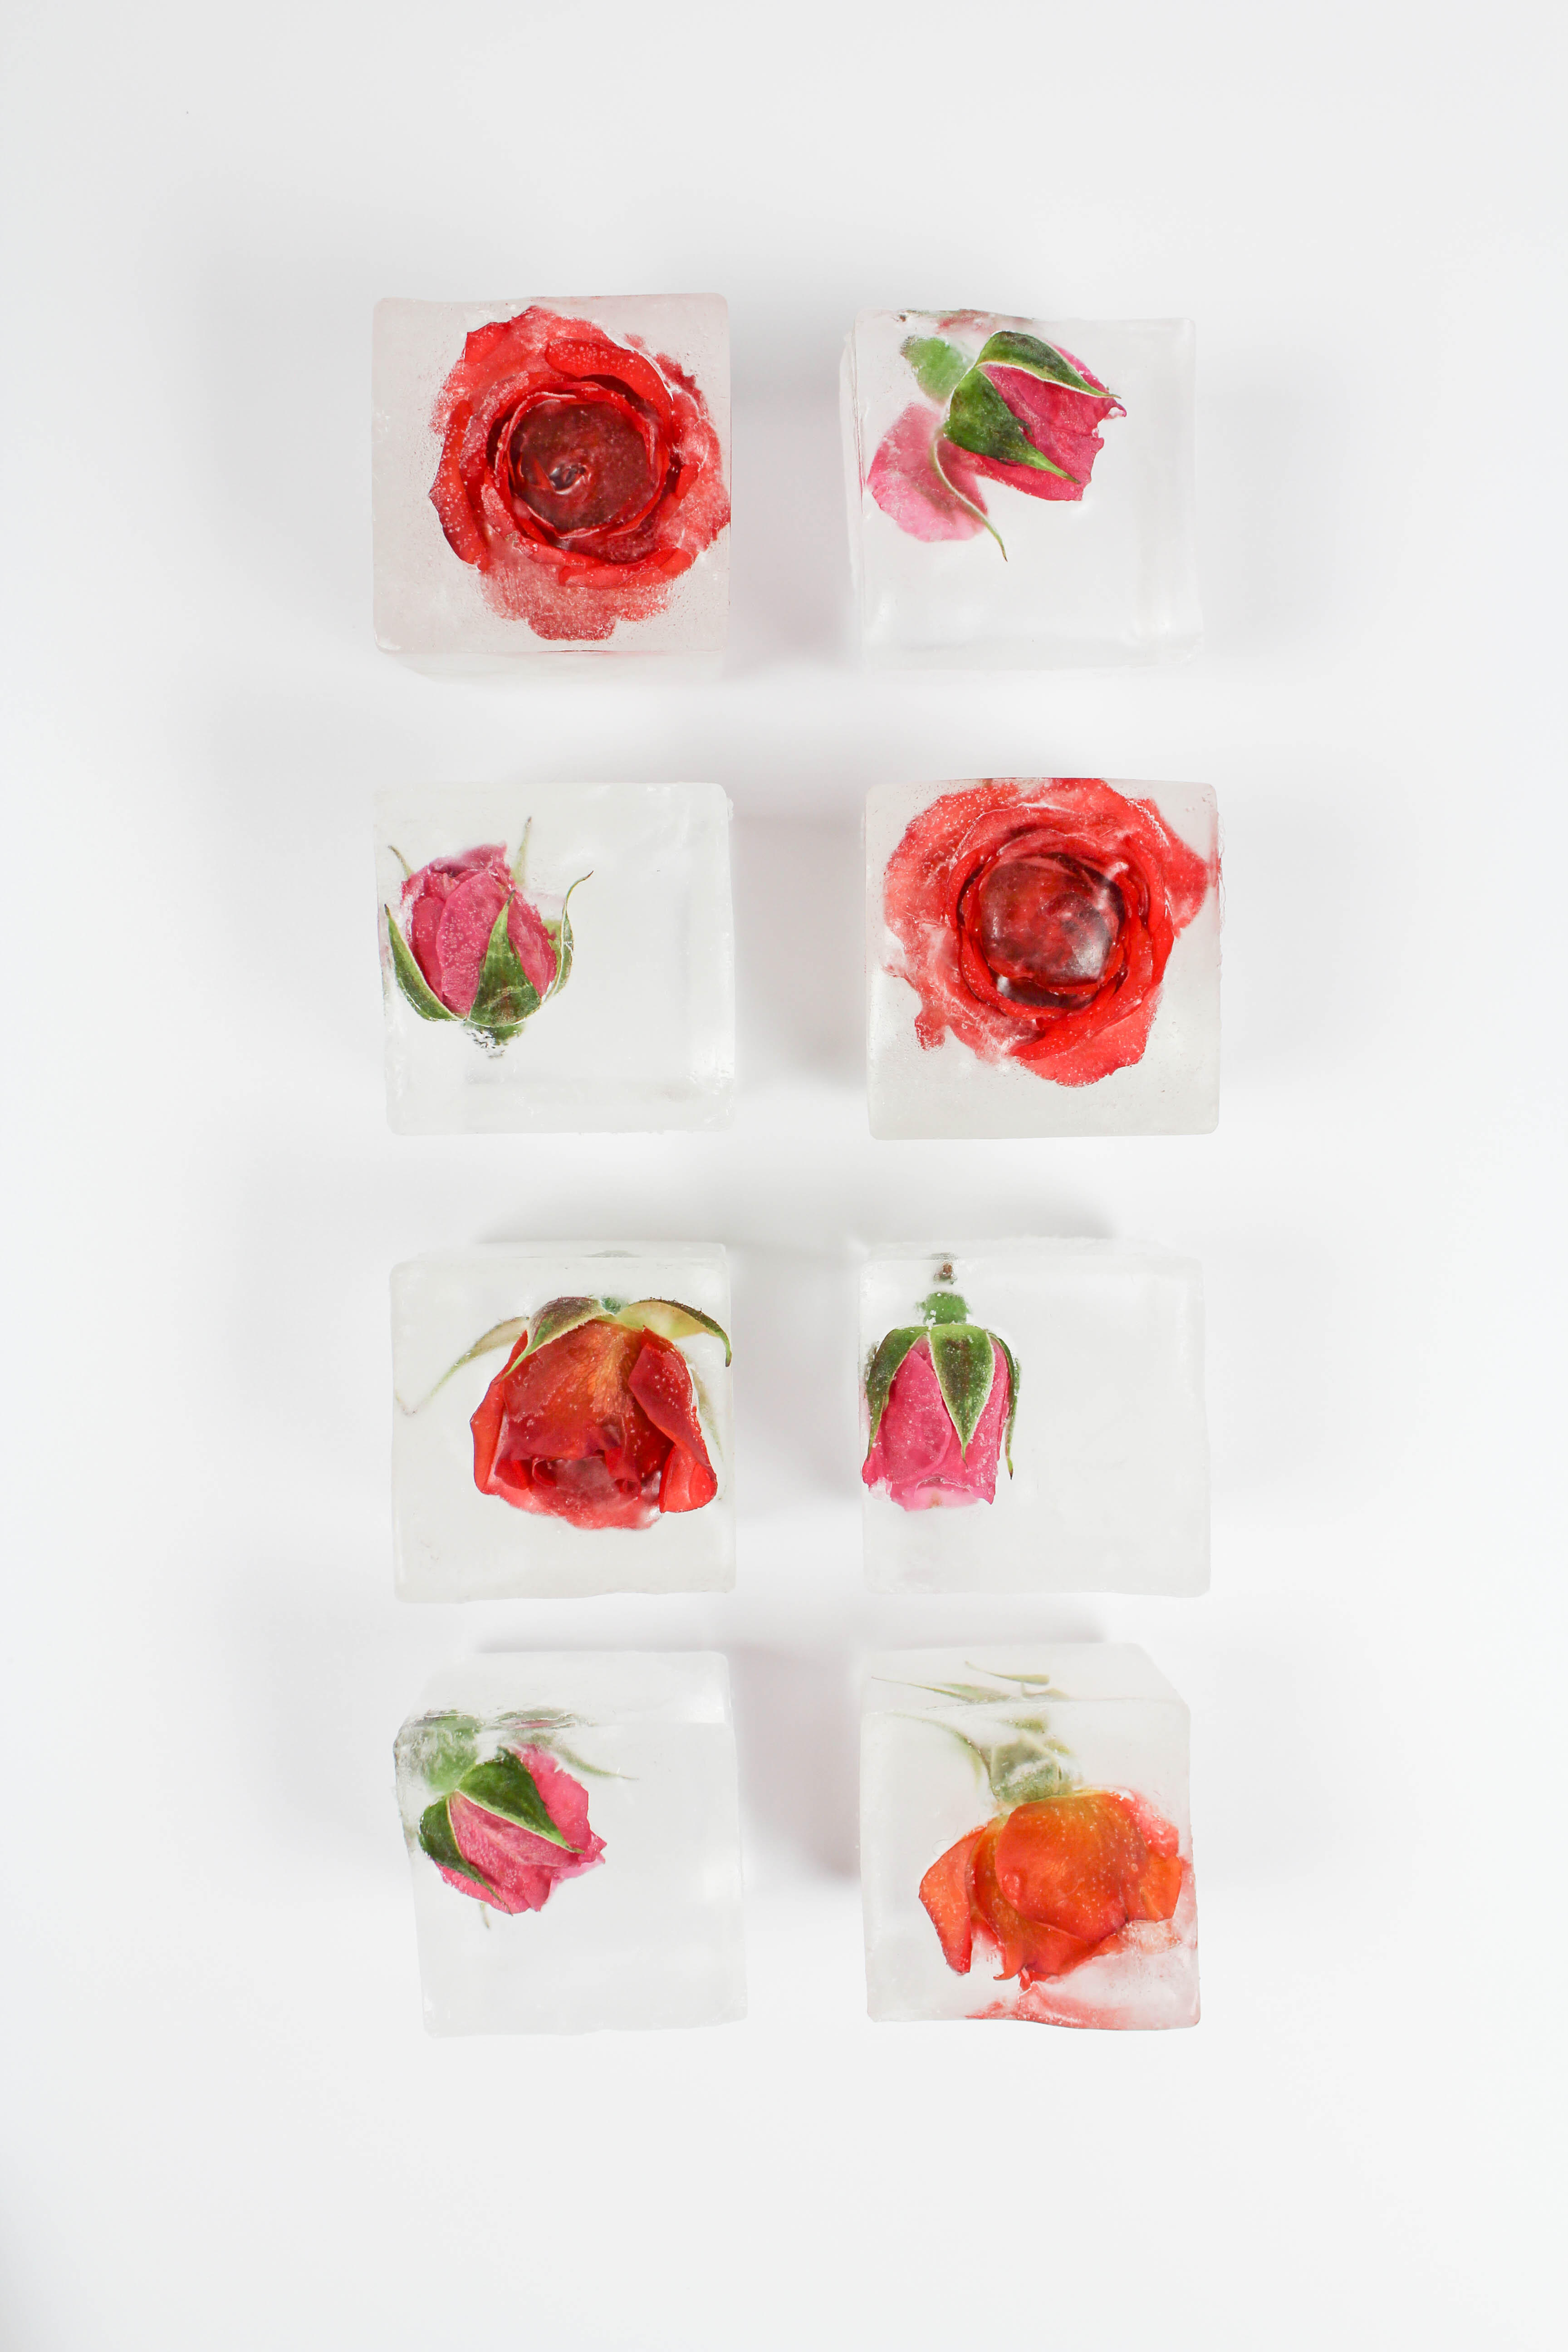 Rose Ice Cubes Lets Mingle Blog